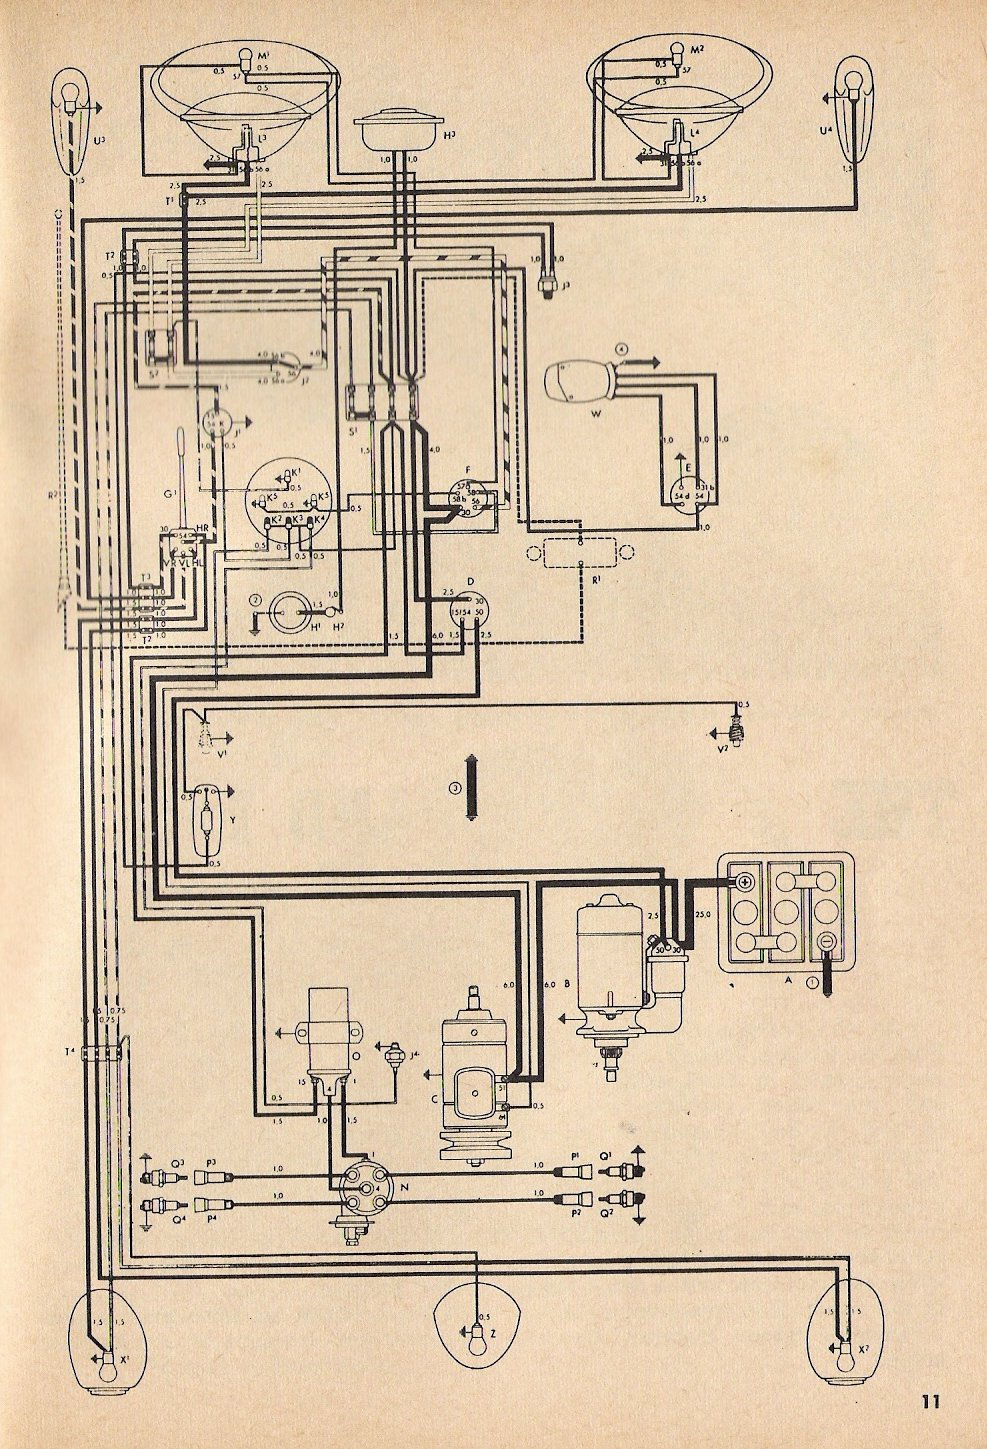 bug_toaug57 thesamba com type 1 wiring diagrams 58 corvette wiring diagram at soozxer.org